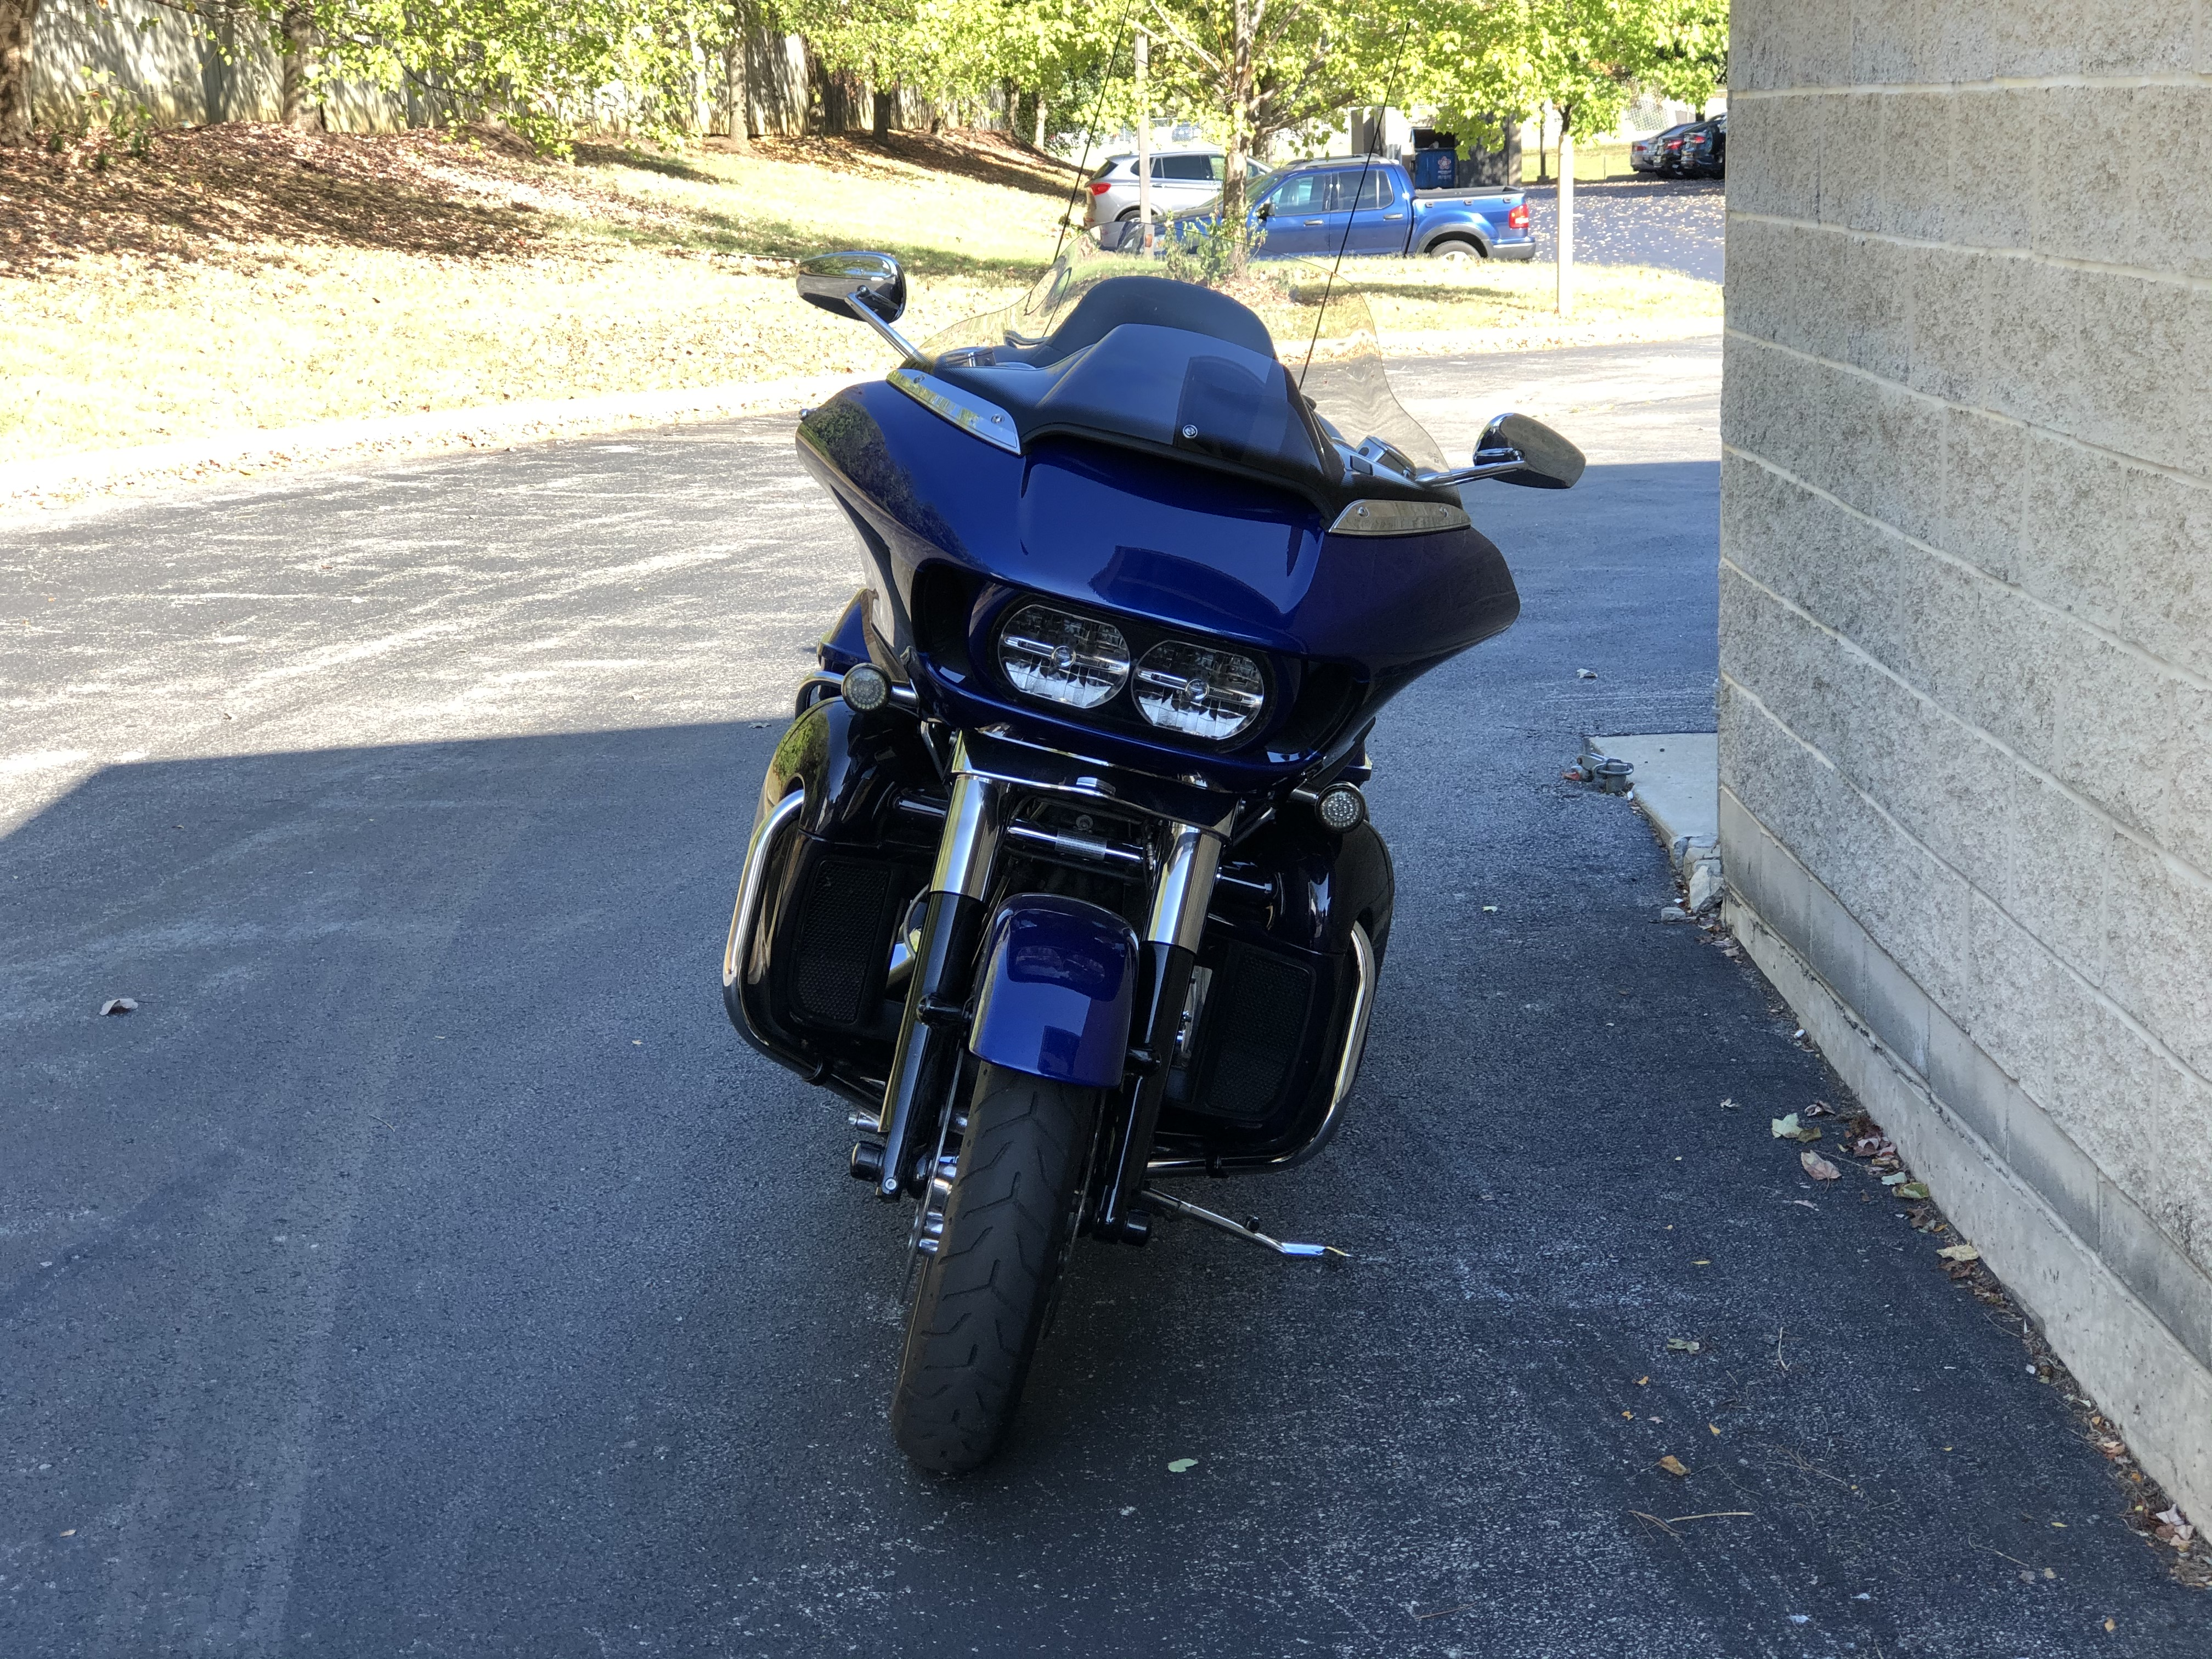 Pre-Owned 2015 Harley-Davidson CVO Road Glide Ultra